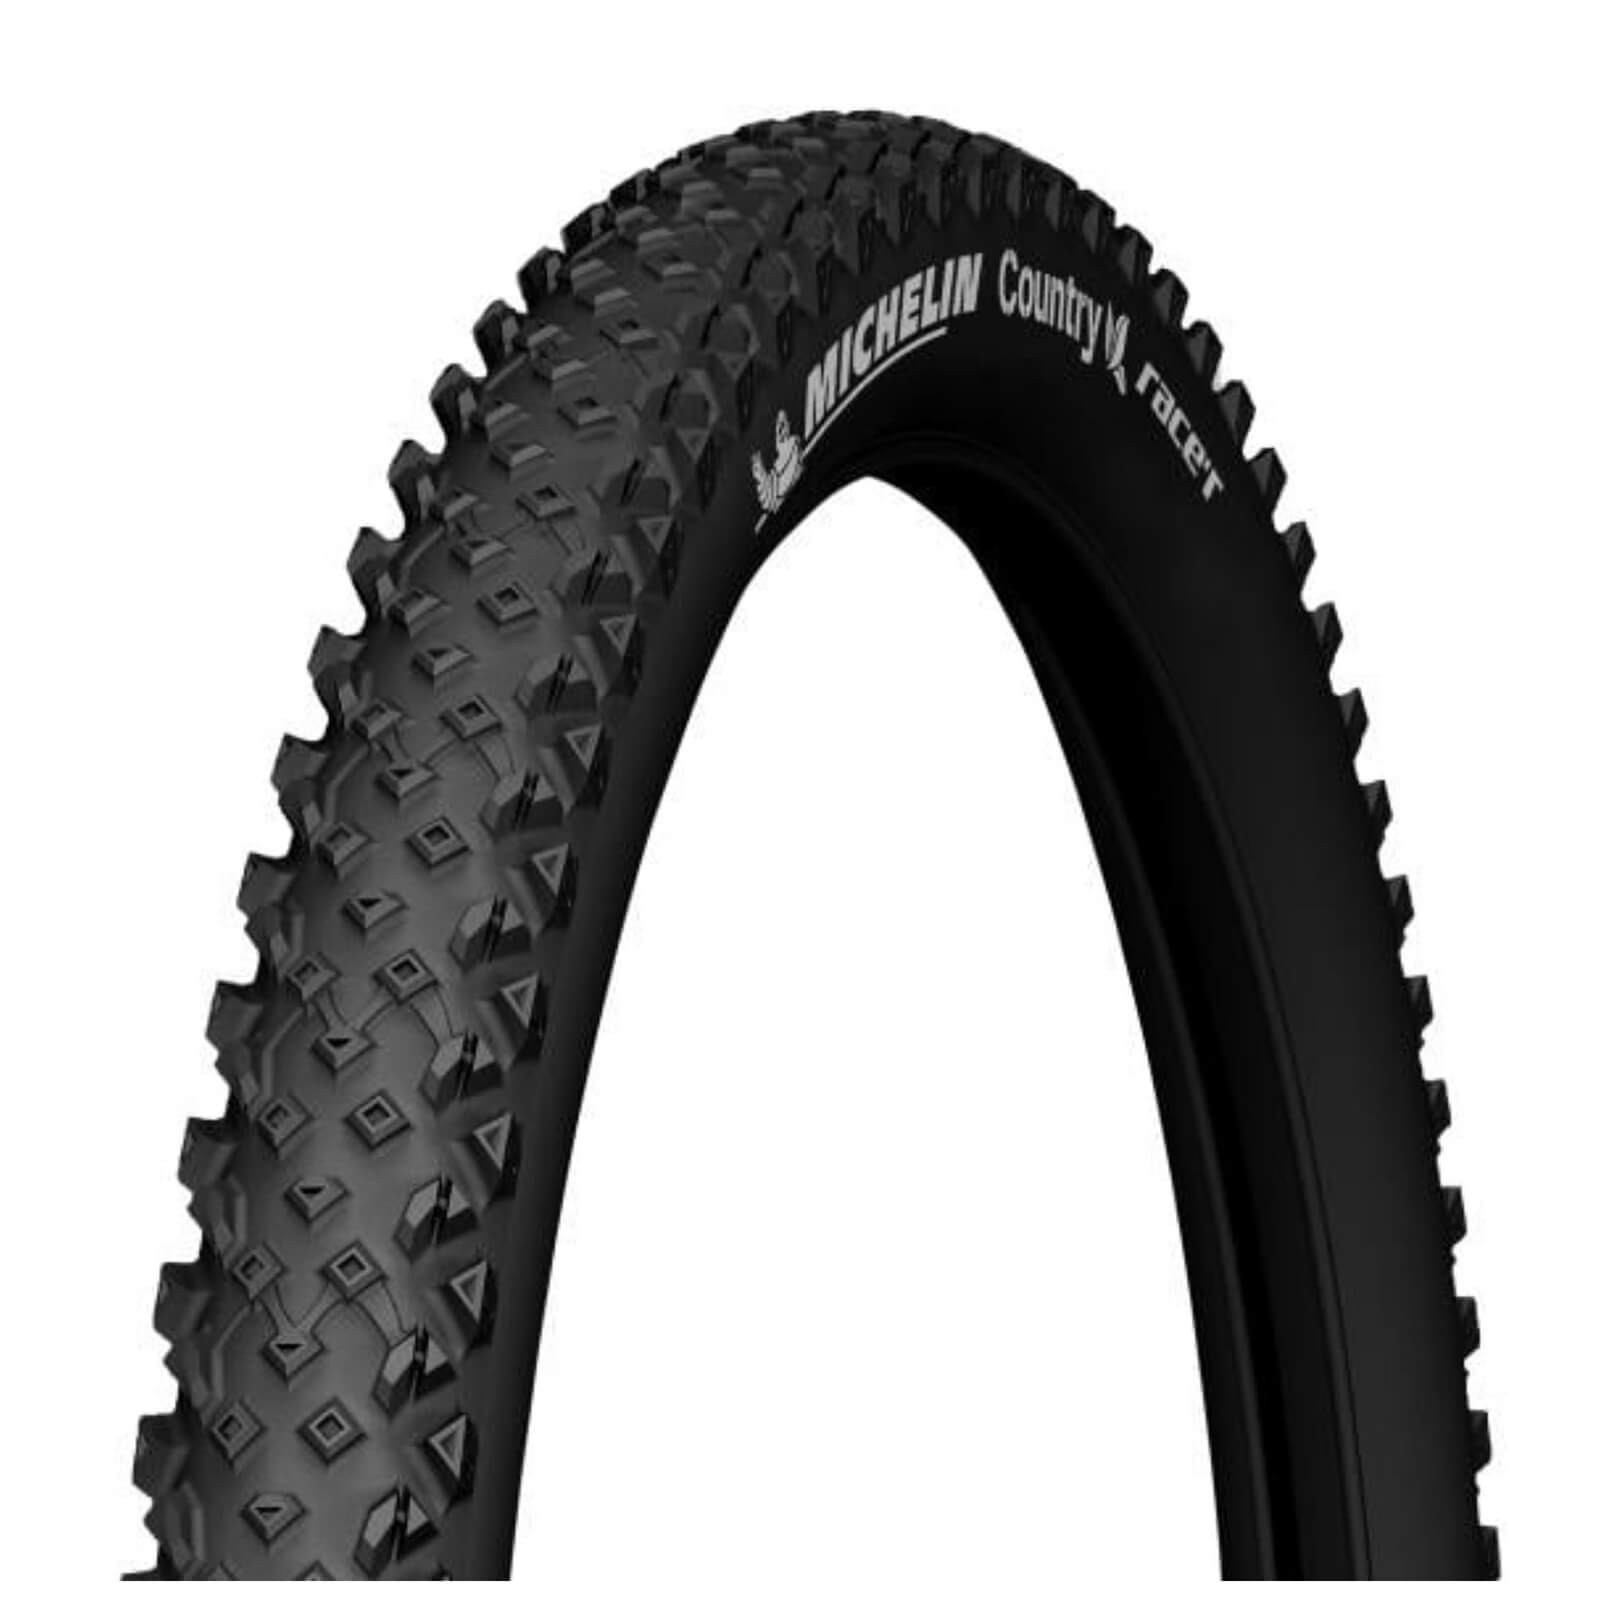 Michelin Country Race-R MTB Tyre - 29x2.10